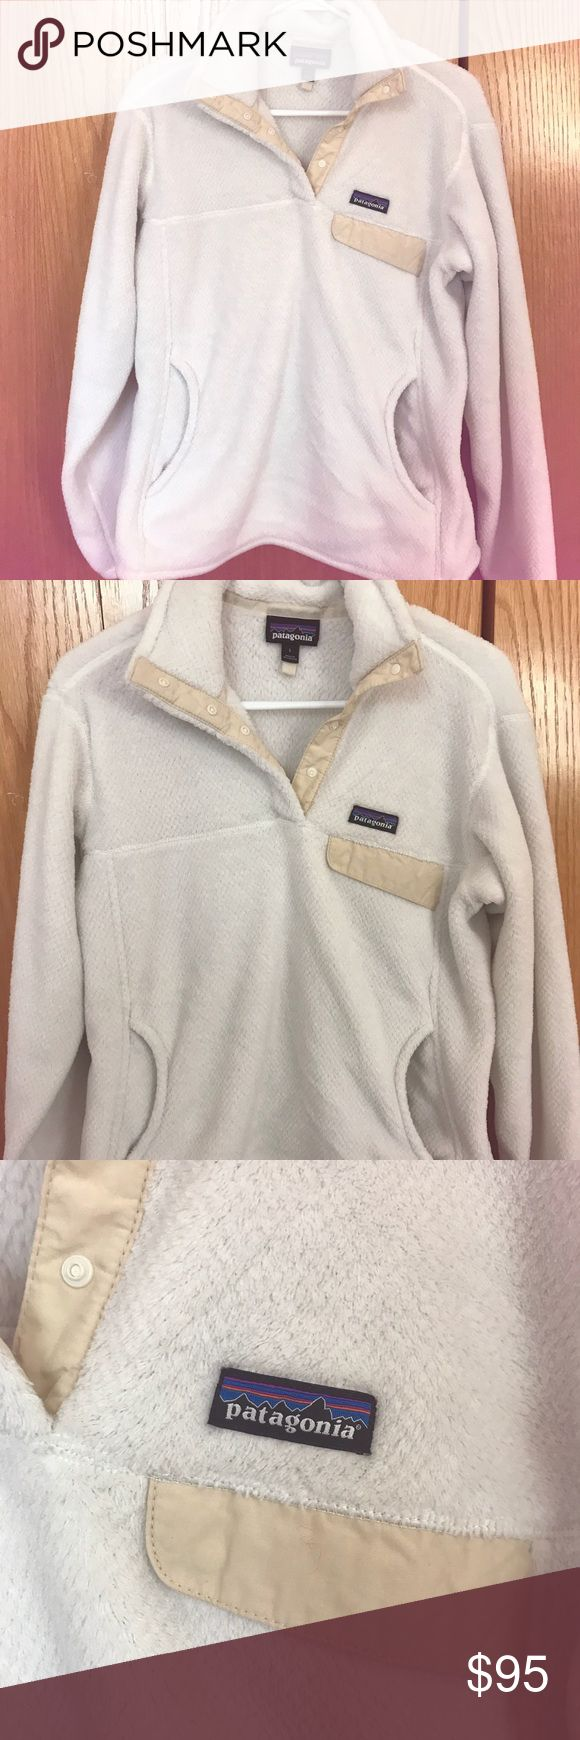 Patagonia Fleece Pullover Excellent condition women's fleece pullover. Worn twice. Beautiful white/cream color that never goes on sale! Patagonia Tops Sweatshirts & Hoodies